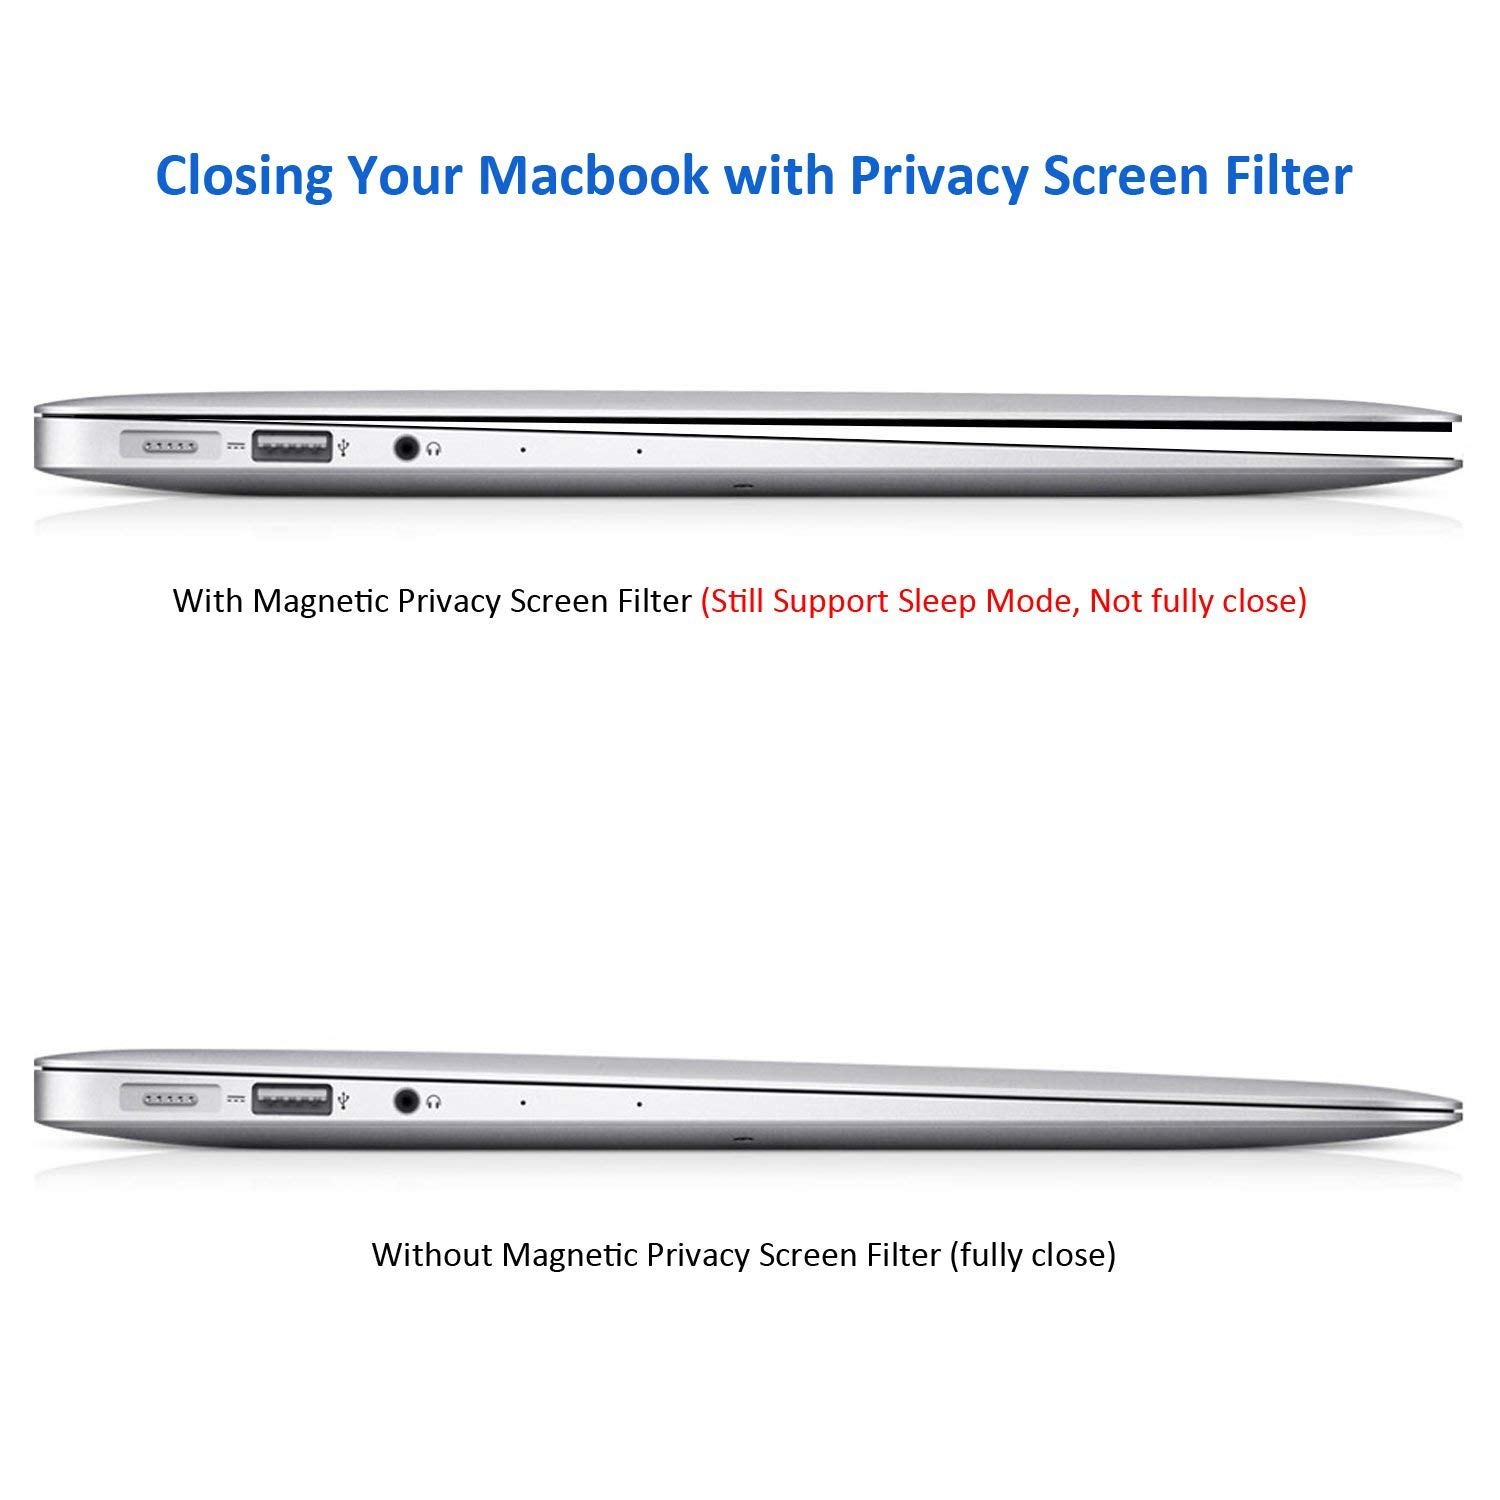 MacBook pro Privacy Screen Protector 13 and 15 inch,Blocks Prying Eyes,Magnetic and Ultra Slim.Easy ON/Off … (MacBook Pro 13 inch (2016-2018)) by JMLY (Image #6)